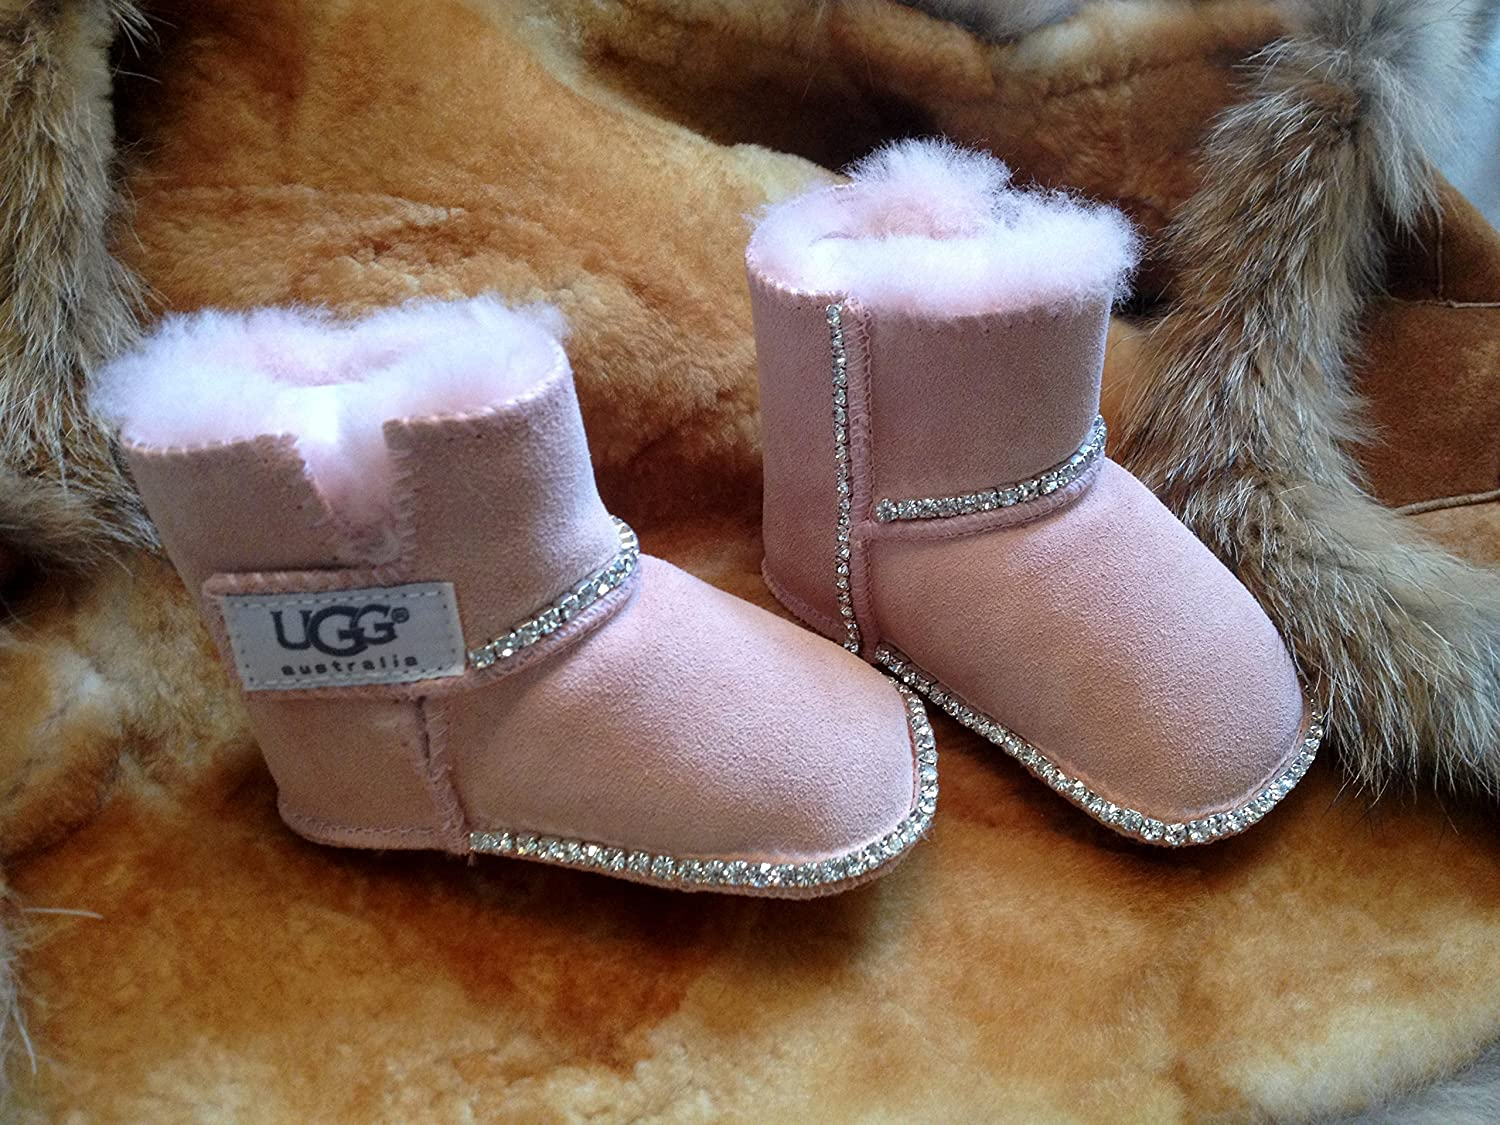 12 MonthsPink Couture Icy Uggs Blingsm6 Boots Baby With vwNnOym80